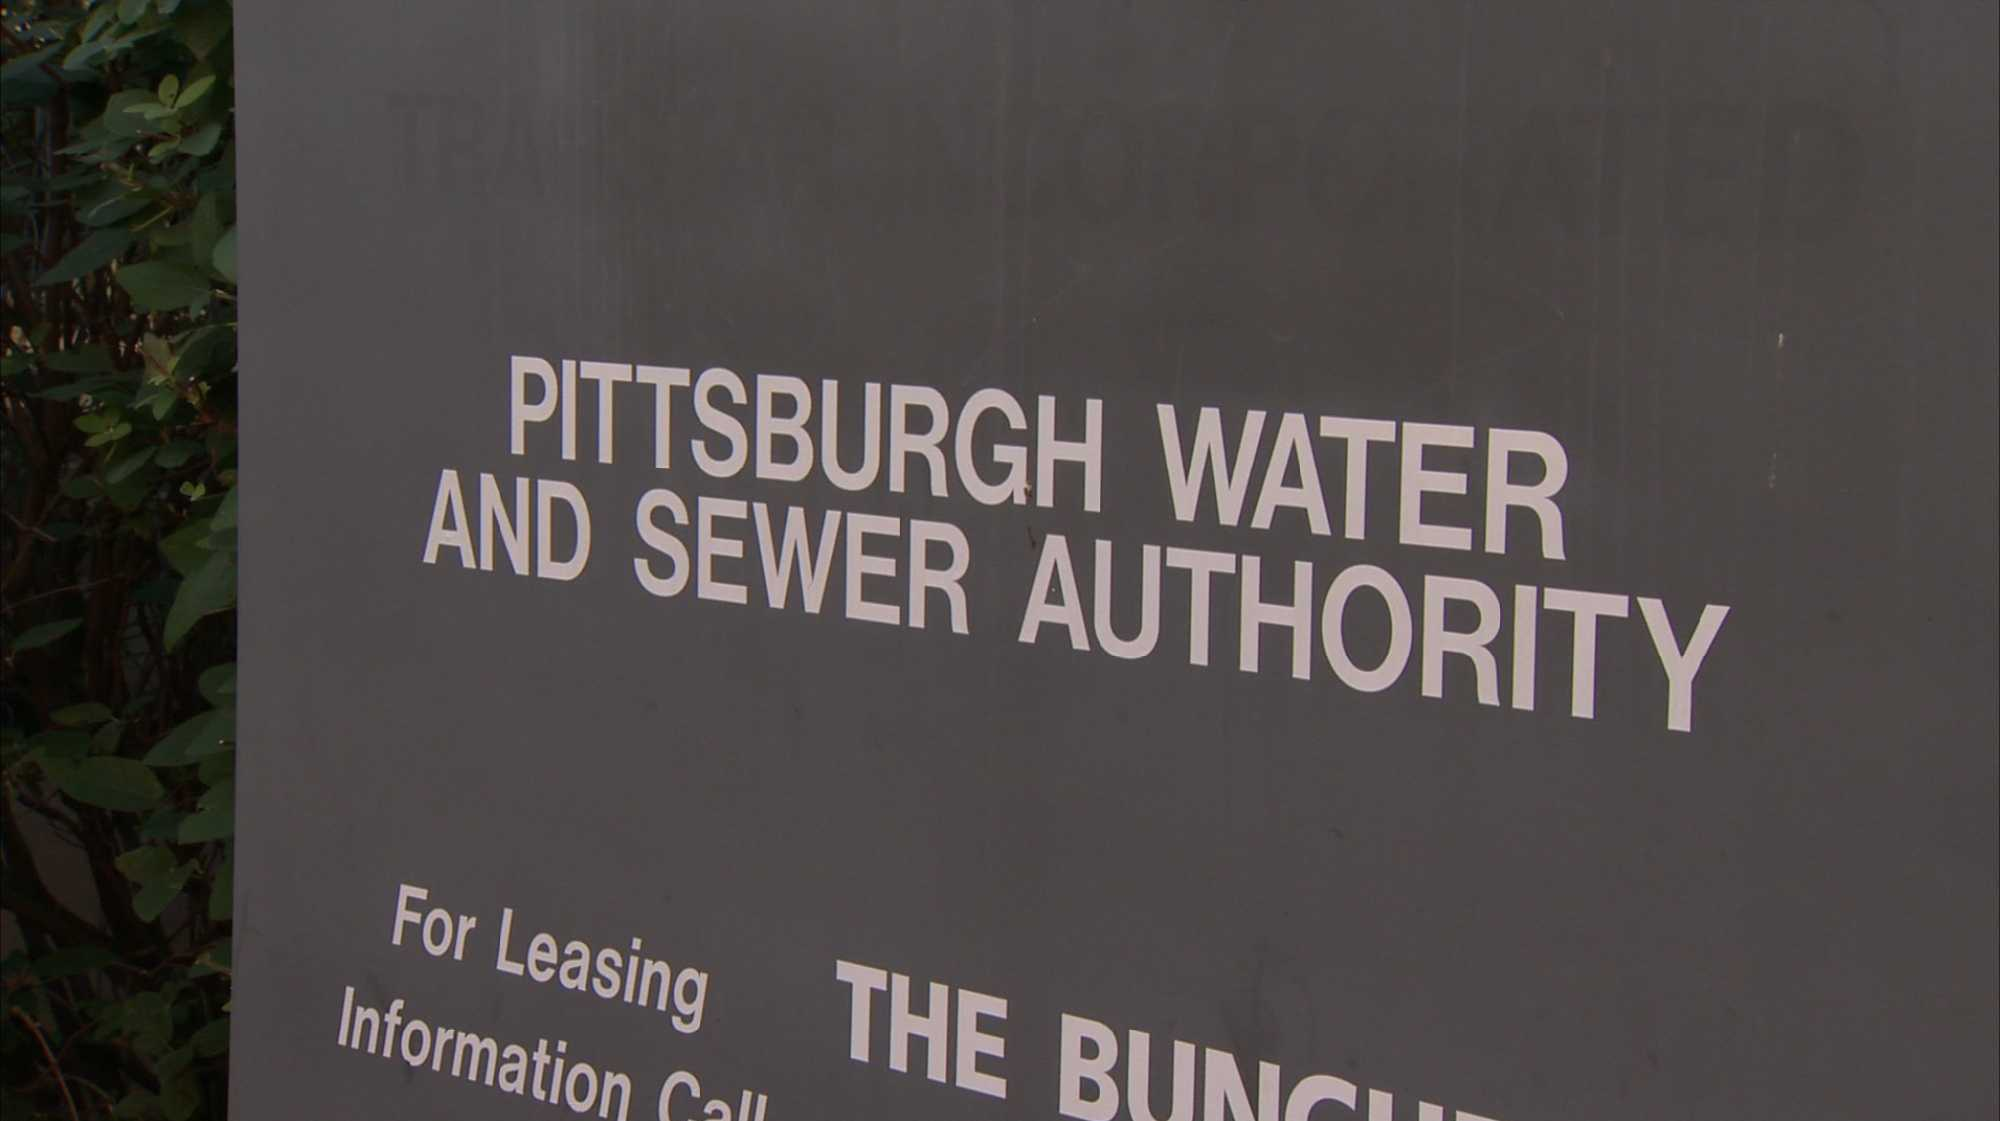 pwsa, Pittsburgh Water and Sewer Authority